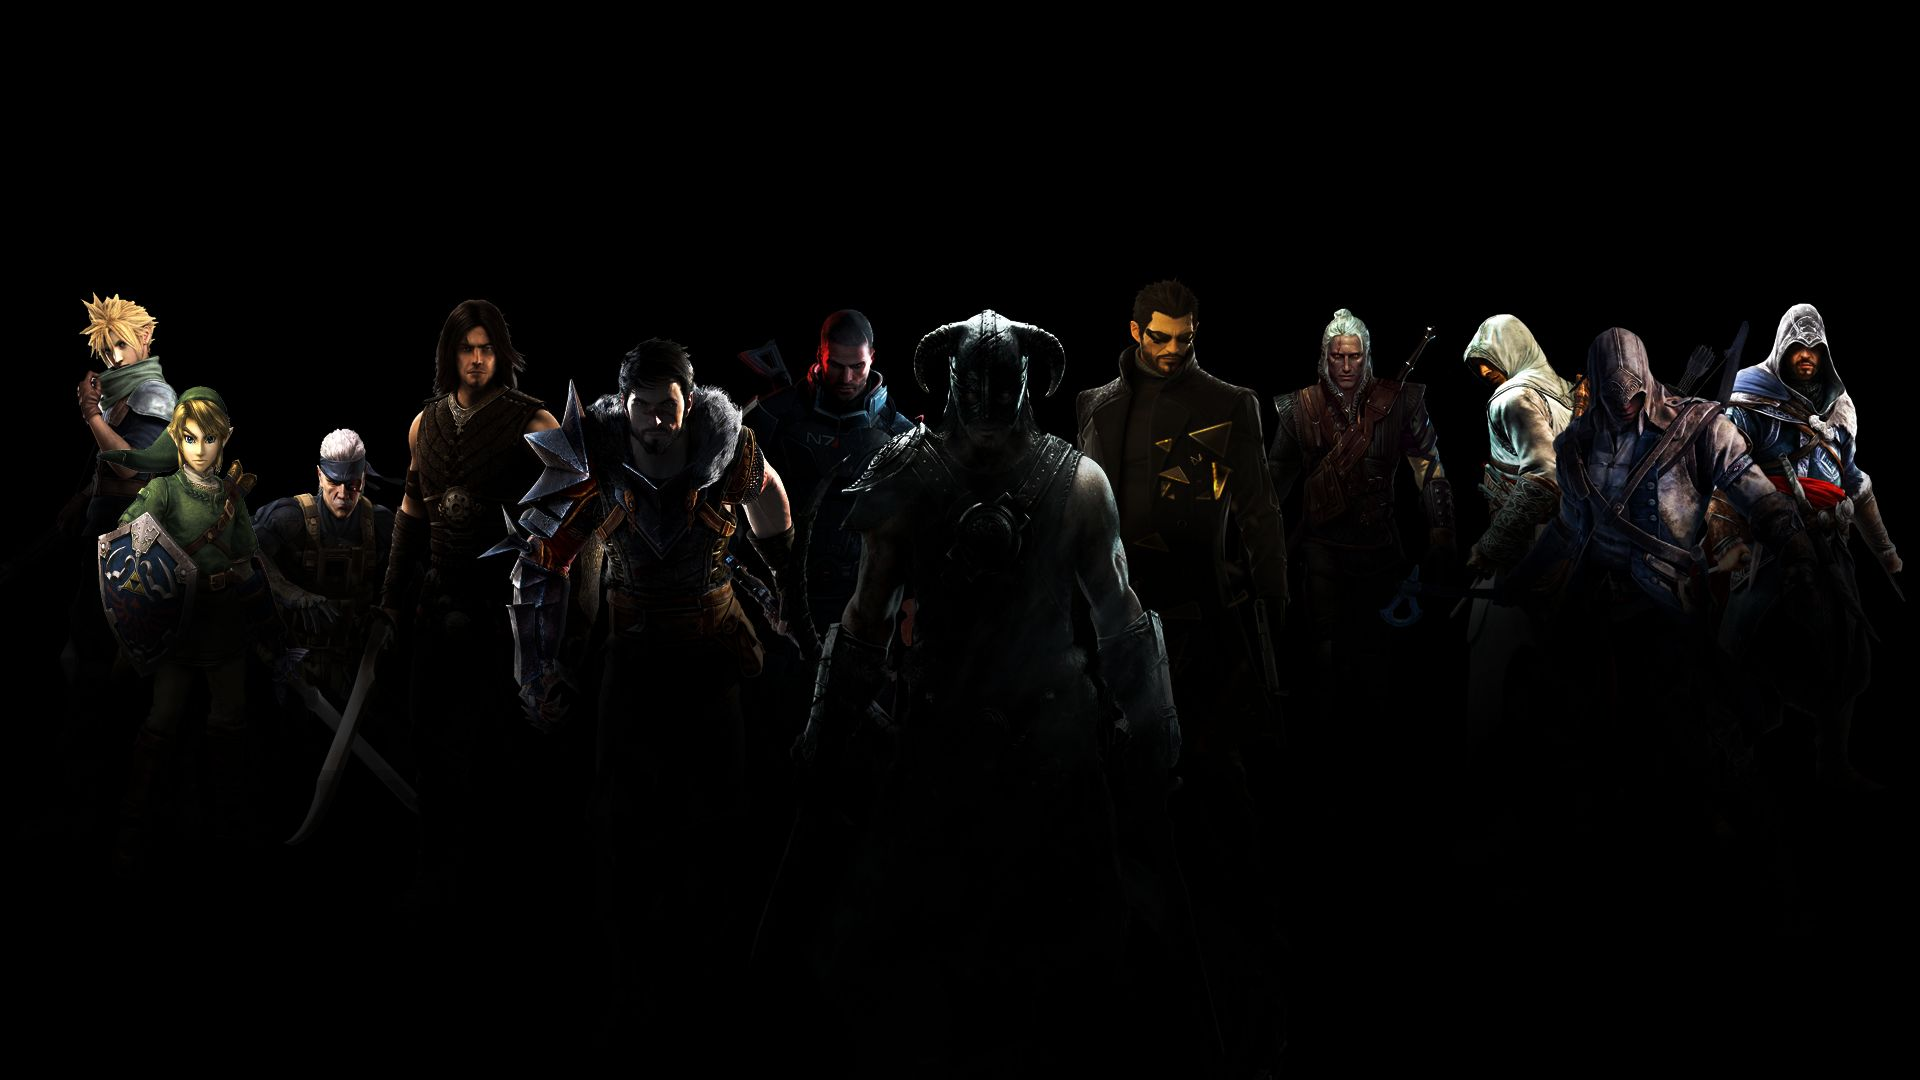 Alpha Coders Wallpaper Abyss Video Game Collage 286249 1920x1080